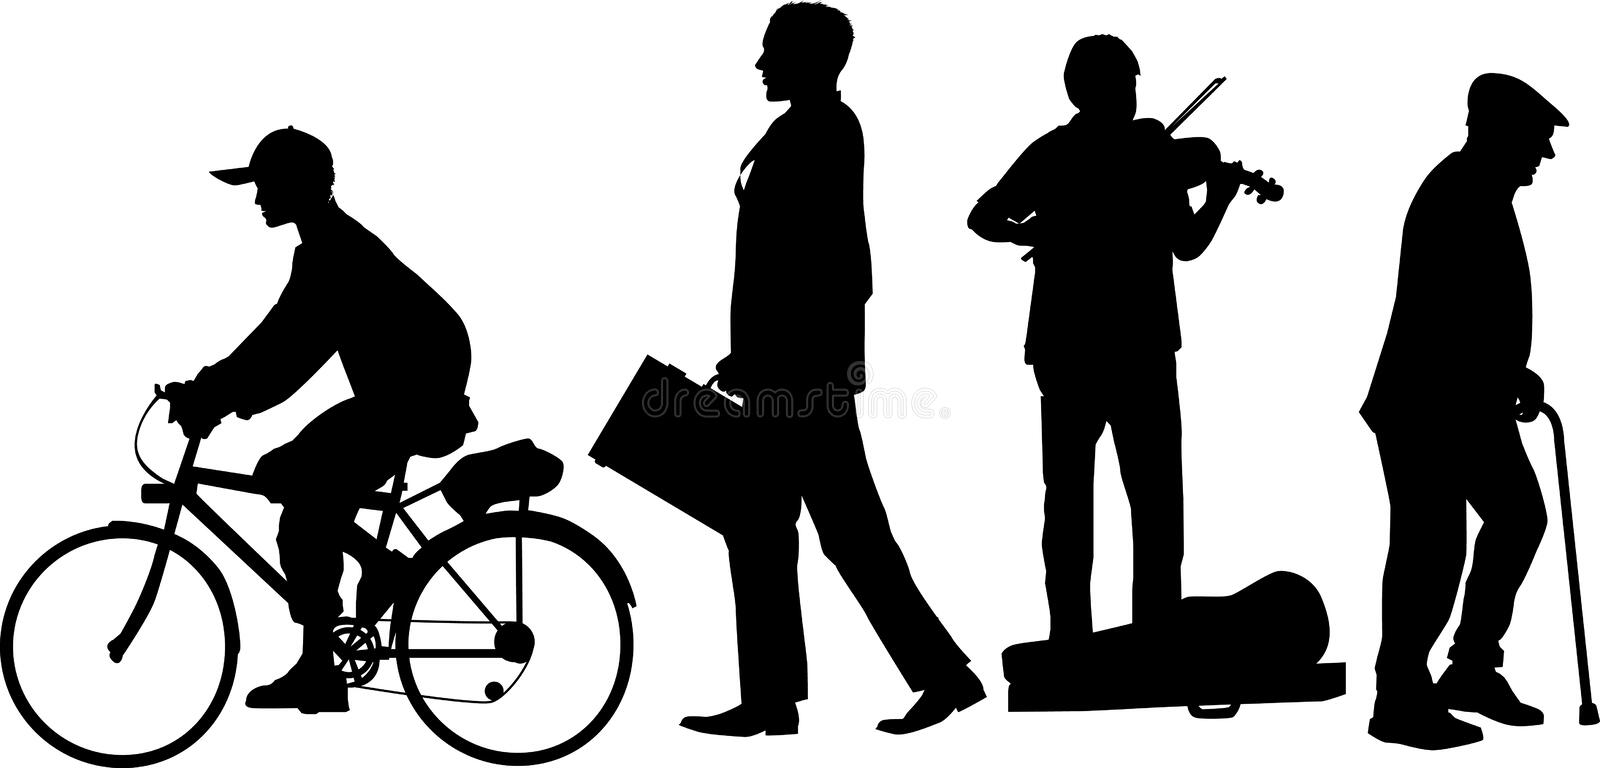 Download Street_corner_group_02 stock illustration. Image of silhouette - 1056192